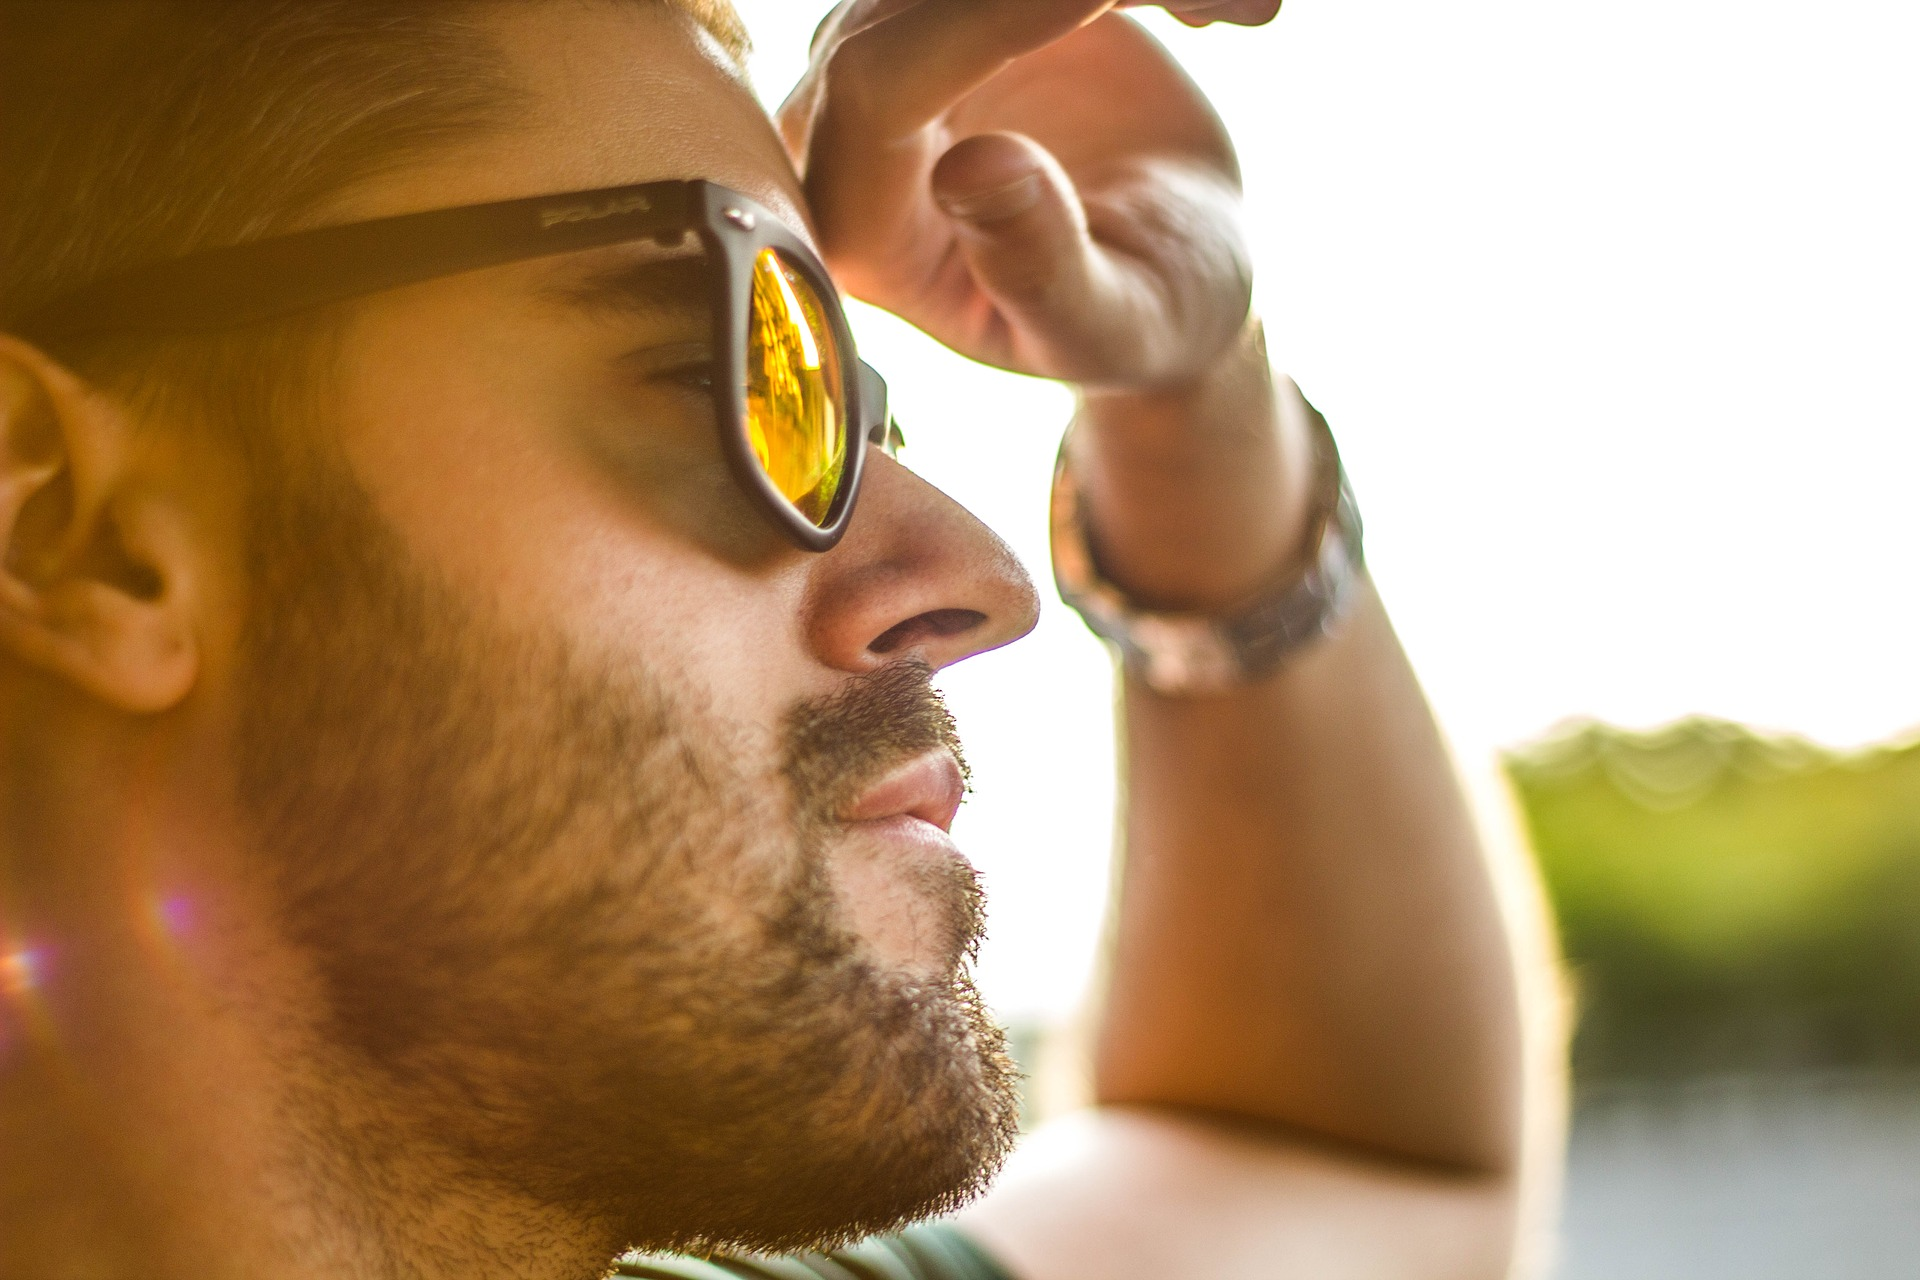 Without proper UV protection, counterfeit sunglasses can harm consumers' eyes, or even cause blindness